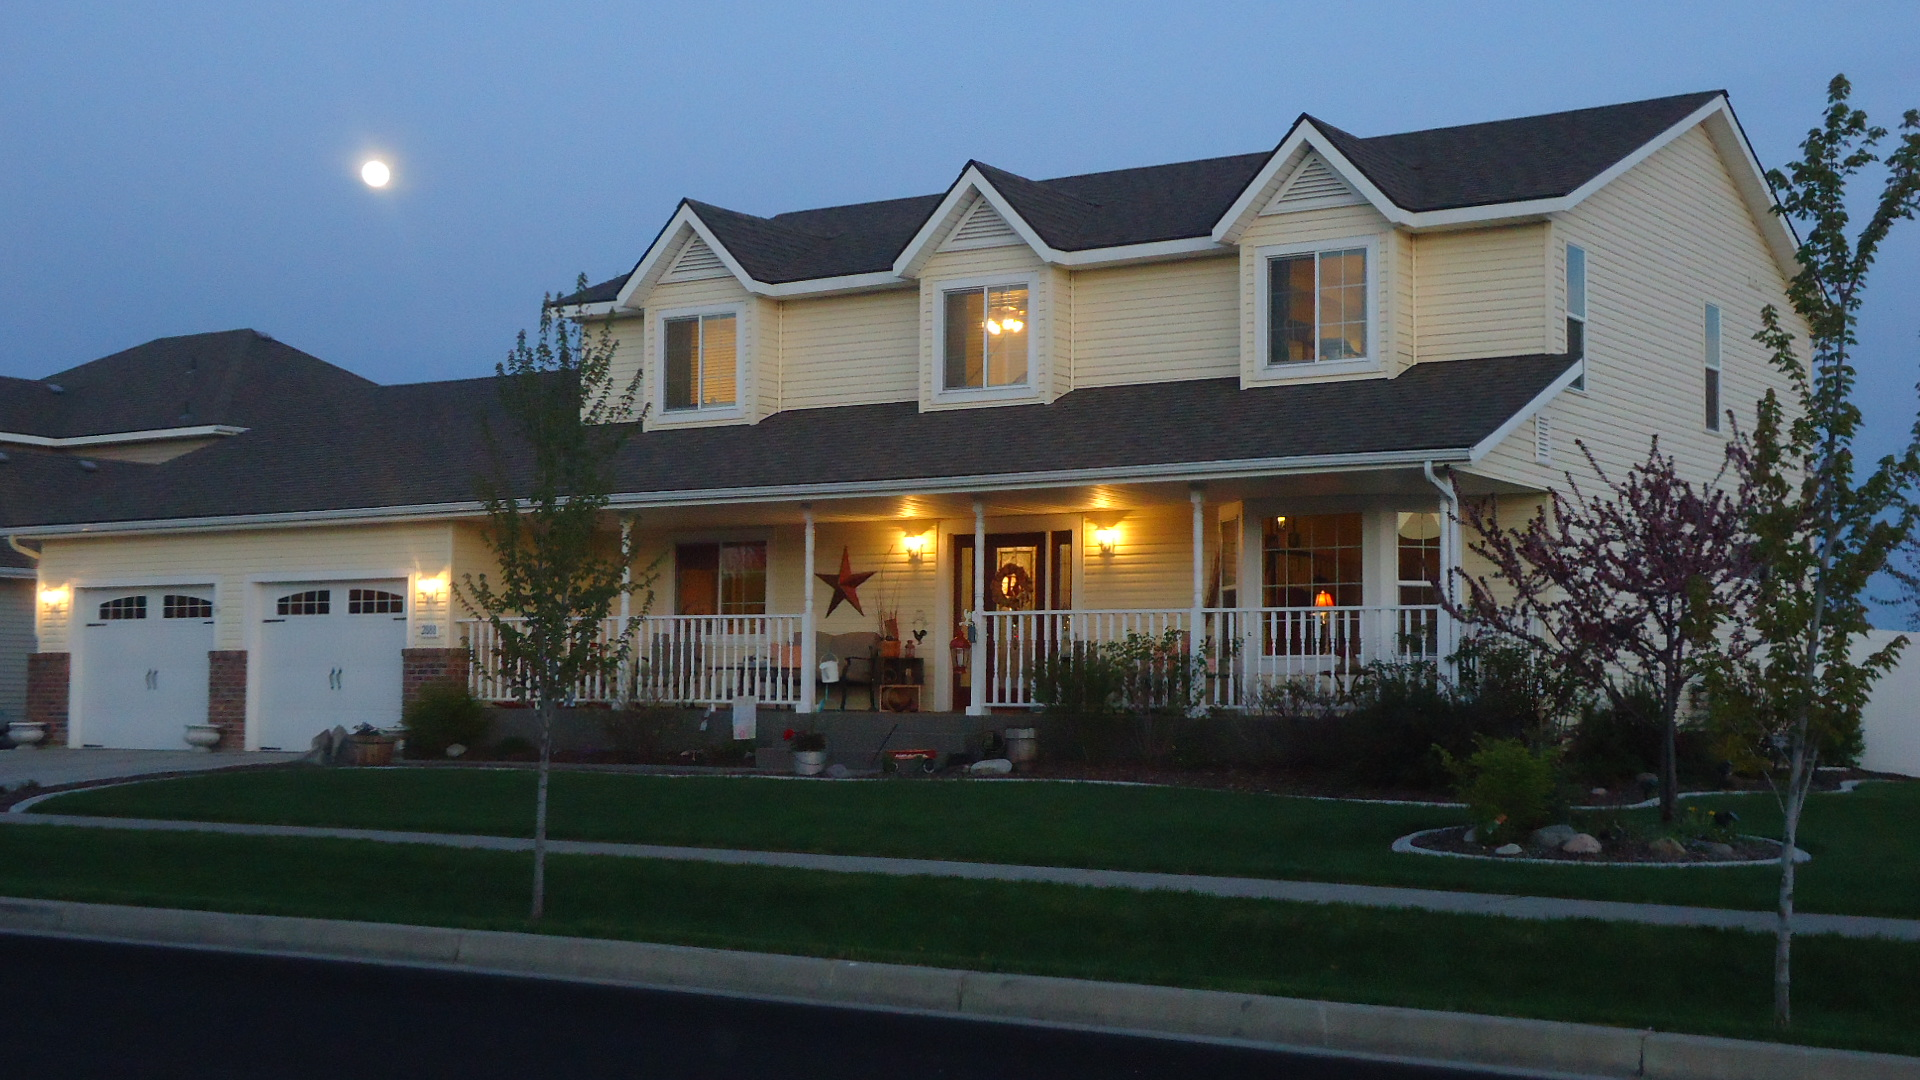 Twilight house for sale finest amazing close up of for Twilight house for sale